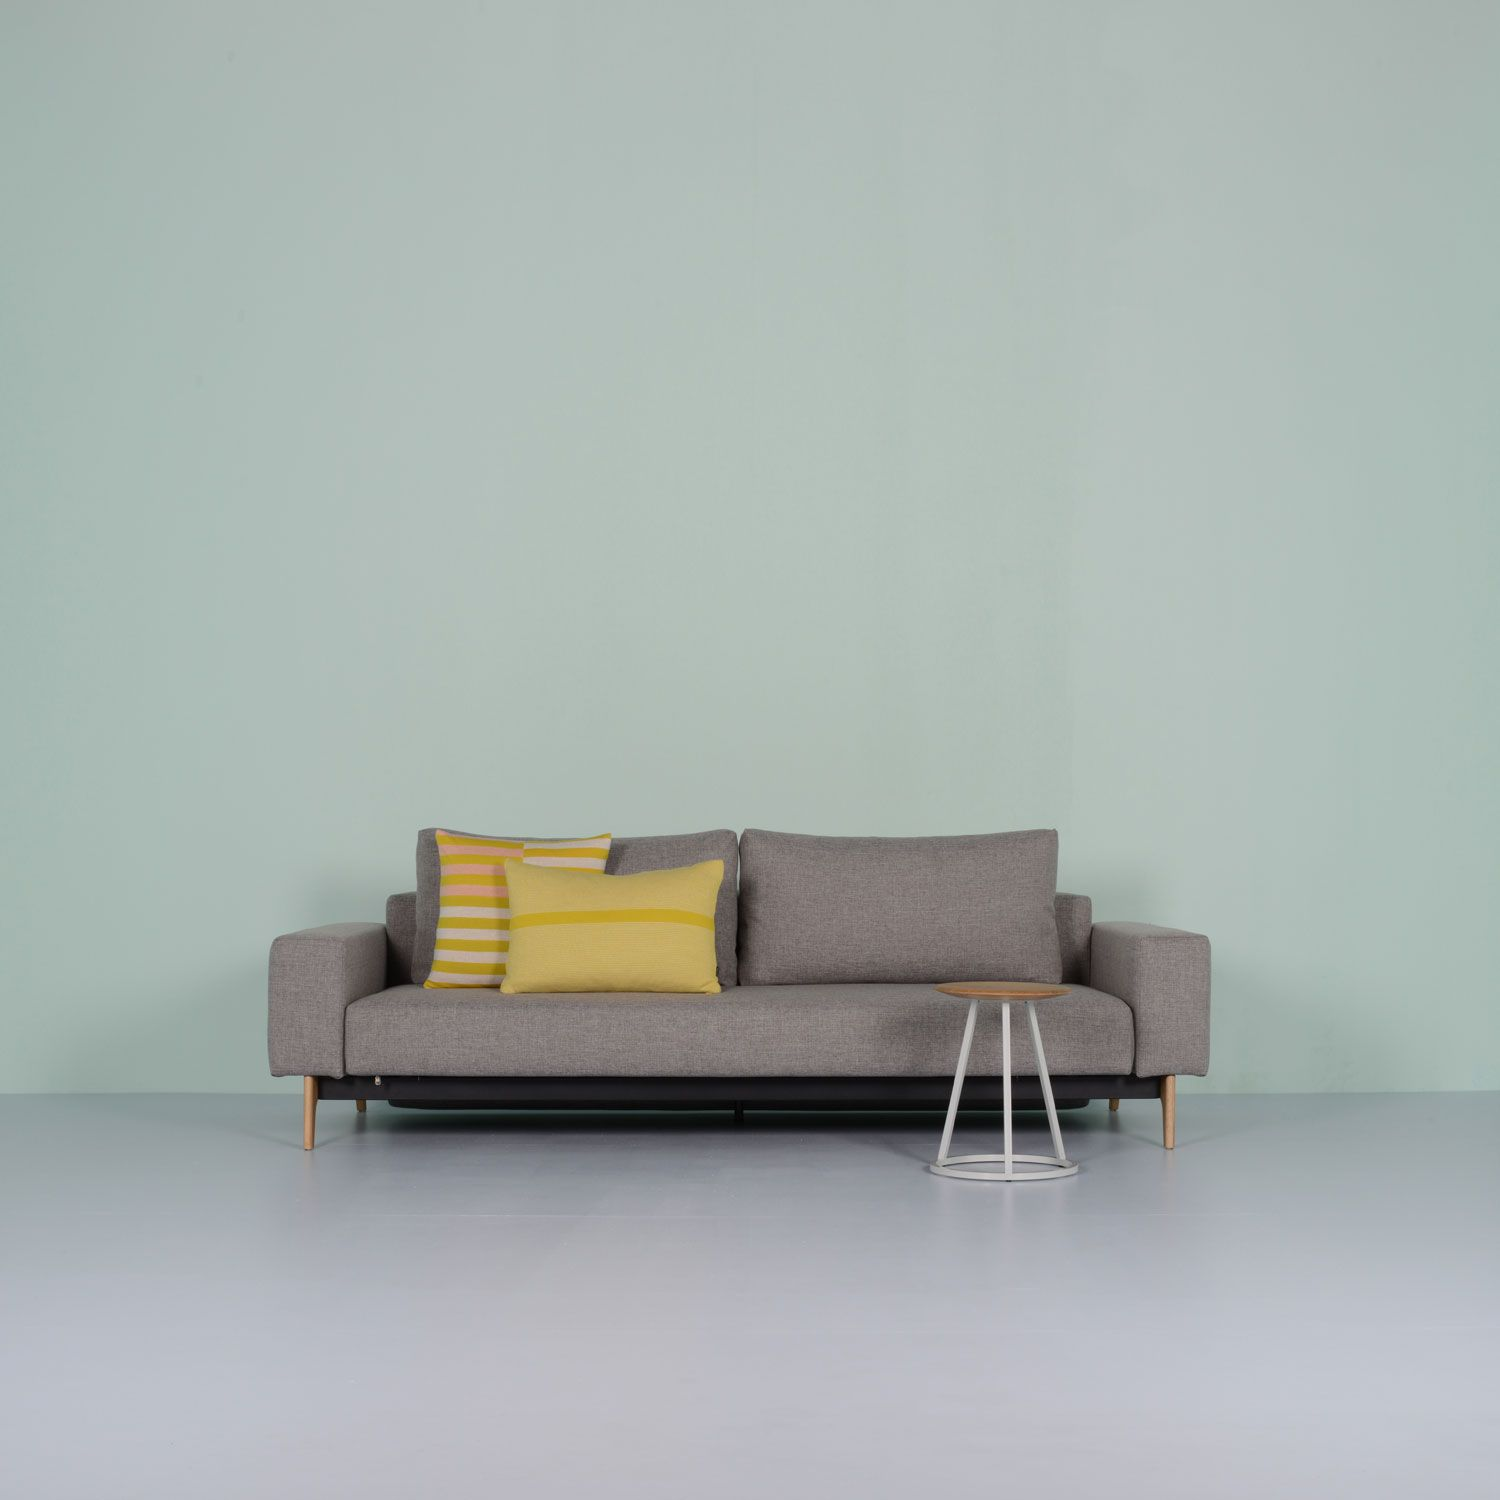 Ambrose Adapt Sofa Bed By Per Weiss | Sofabeds | Sofas | Furniture | Healu0027s  Photos